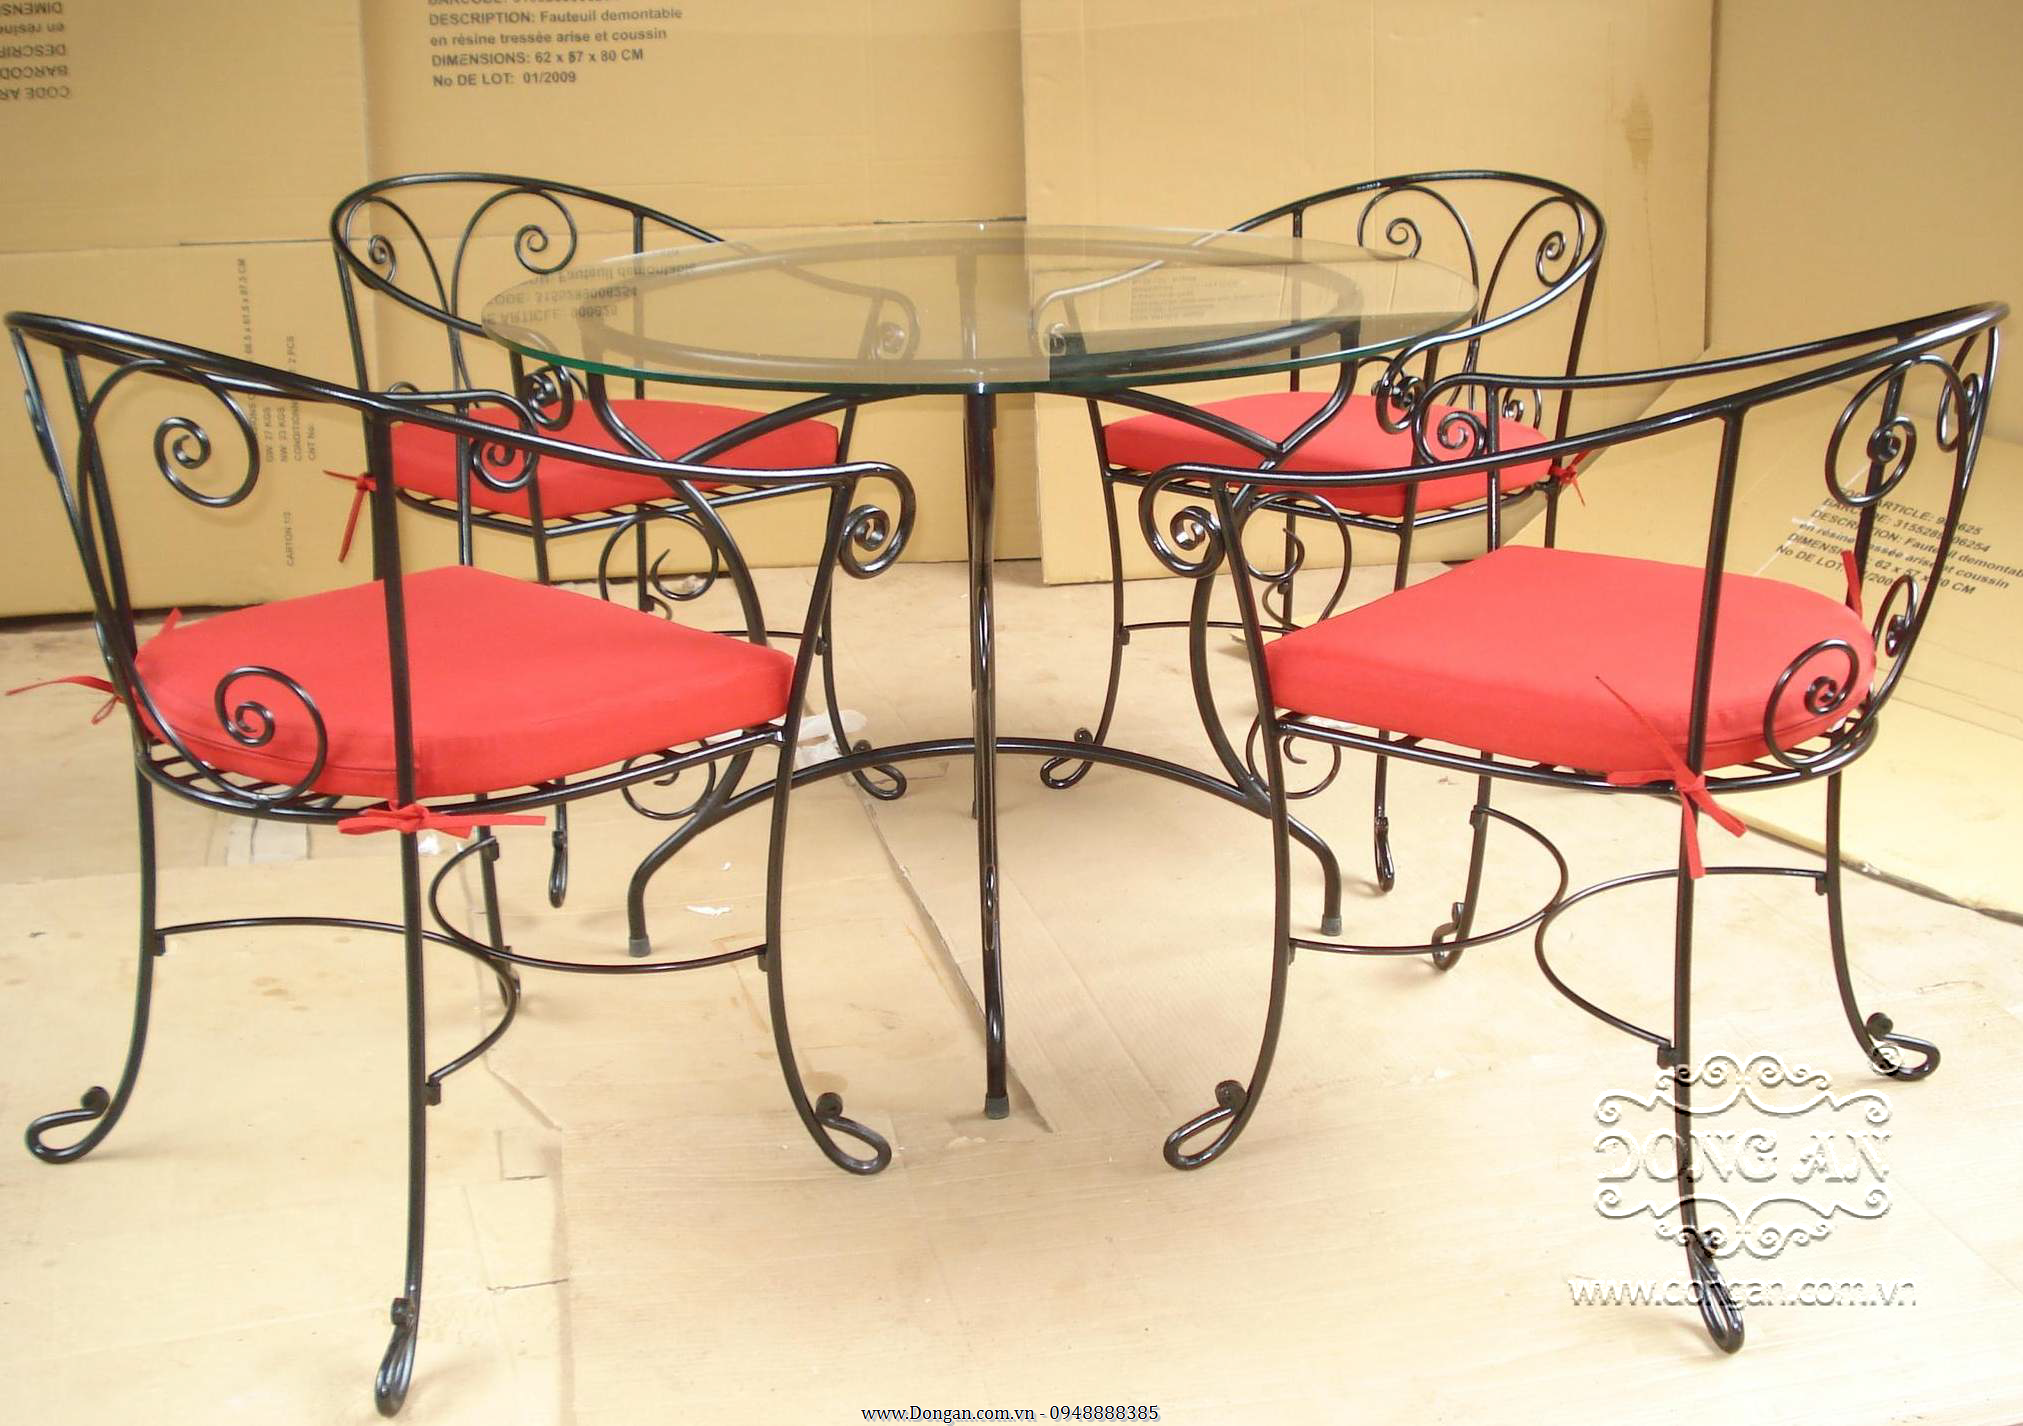 The beautiful garden furniture DA13-BG35